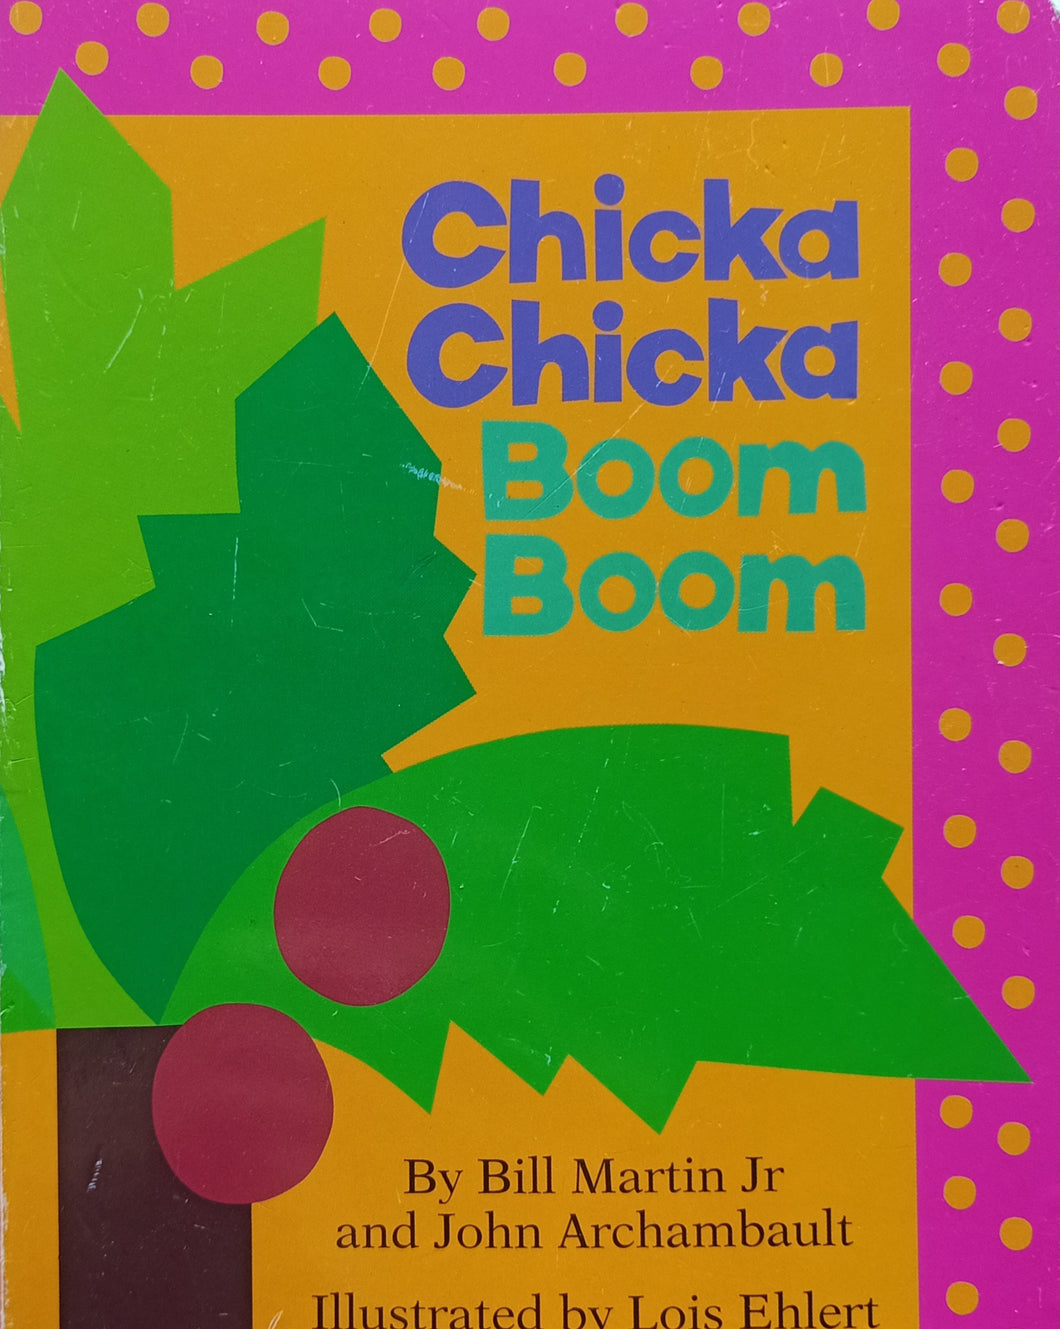 Chicke Chicka Boom Boom by Bill Martin Jr